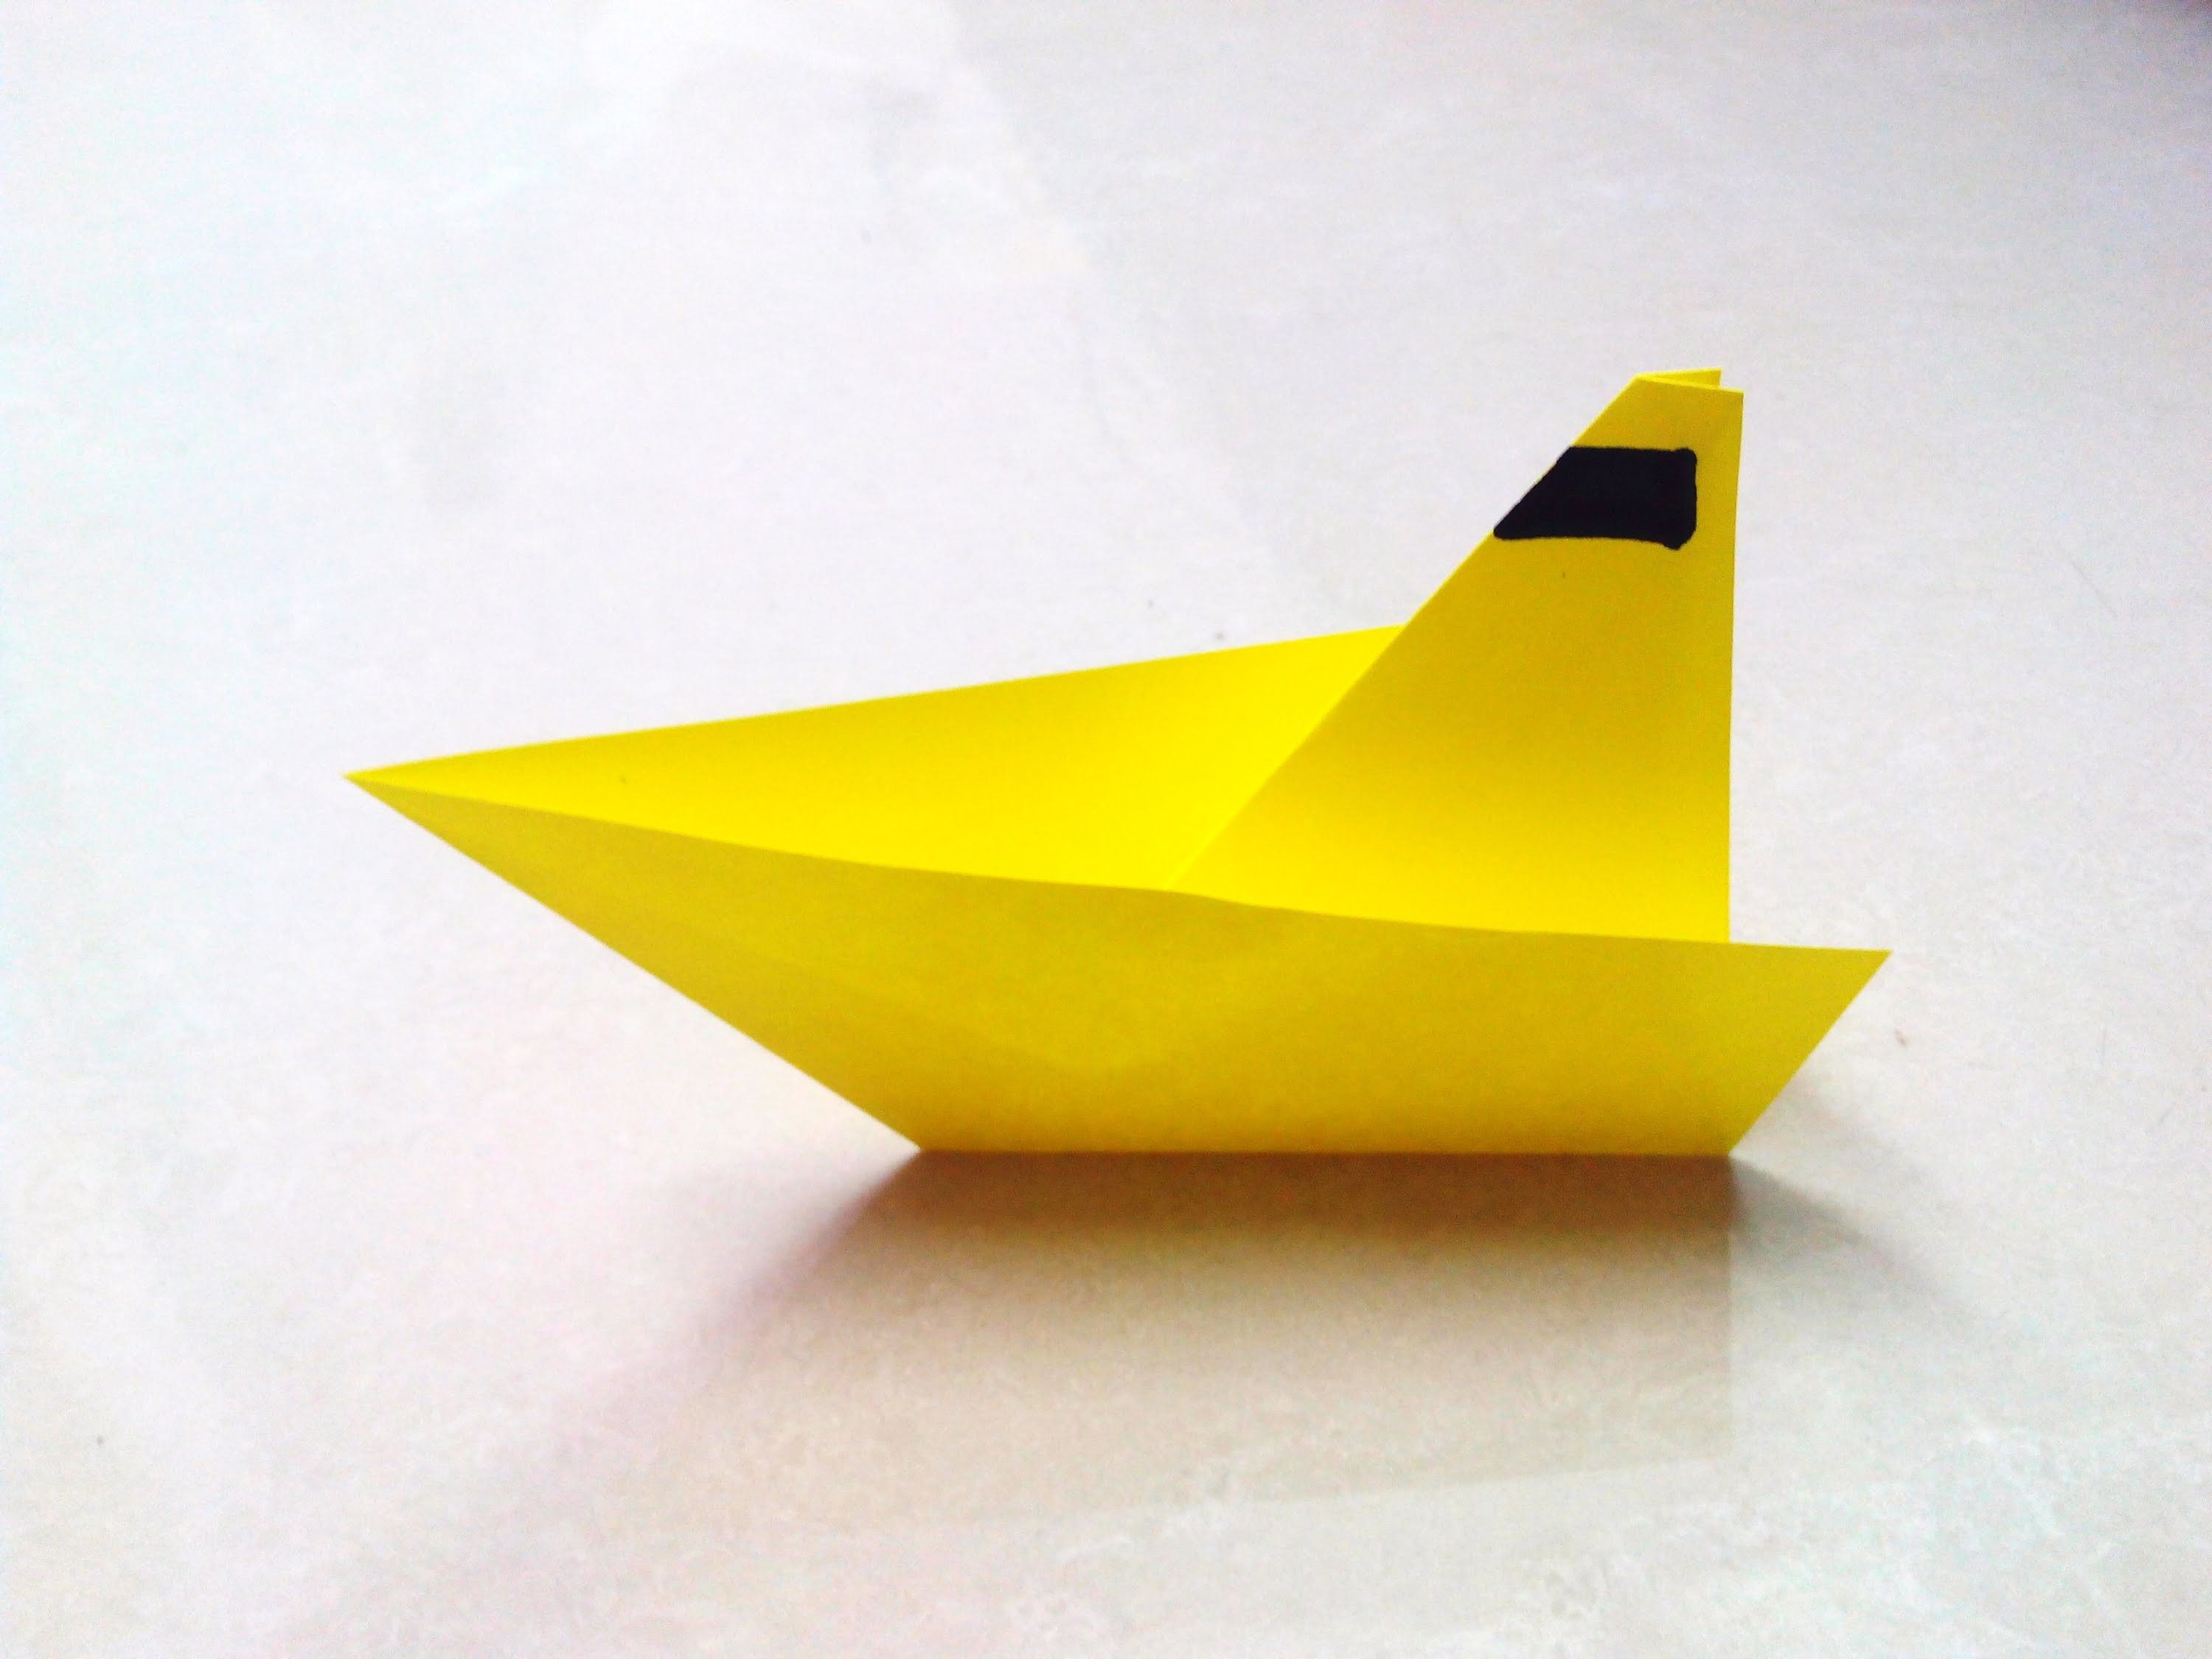 Making a simple boat out of paper with children 45